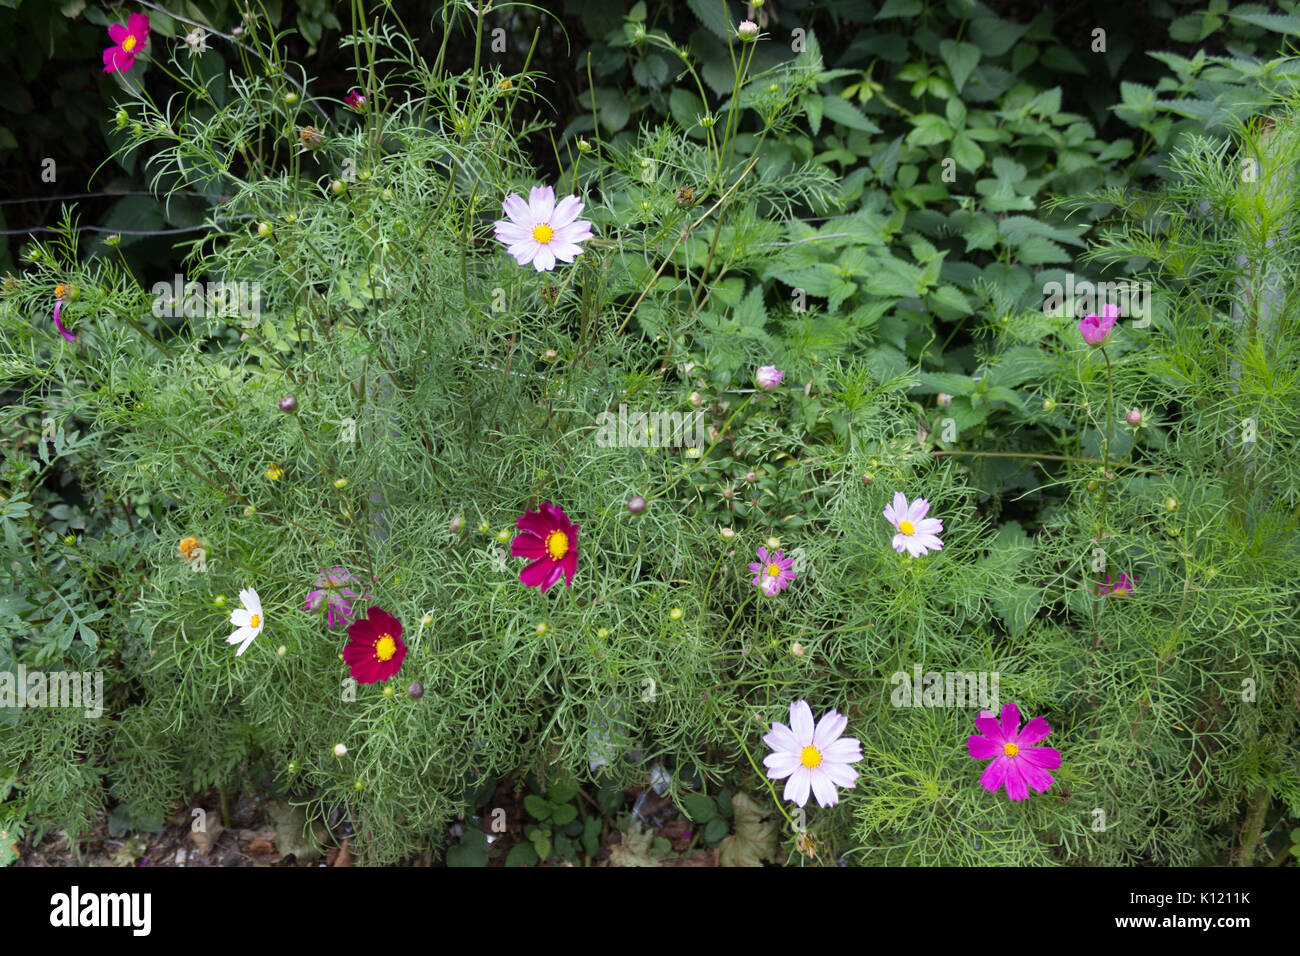 Bright light multi colored Cosmos flowers with eight petals and a yellow centre on a stem in full bloom in Summer in the garden with green leaves in t - Stock Image